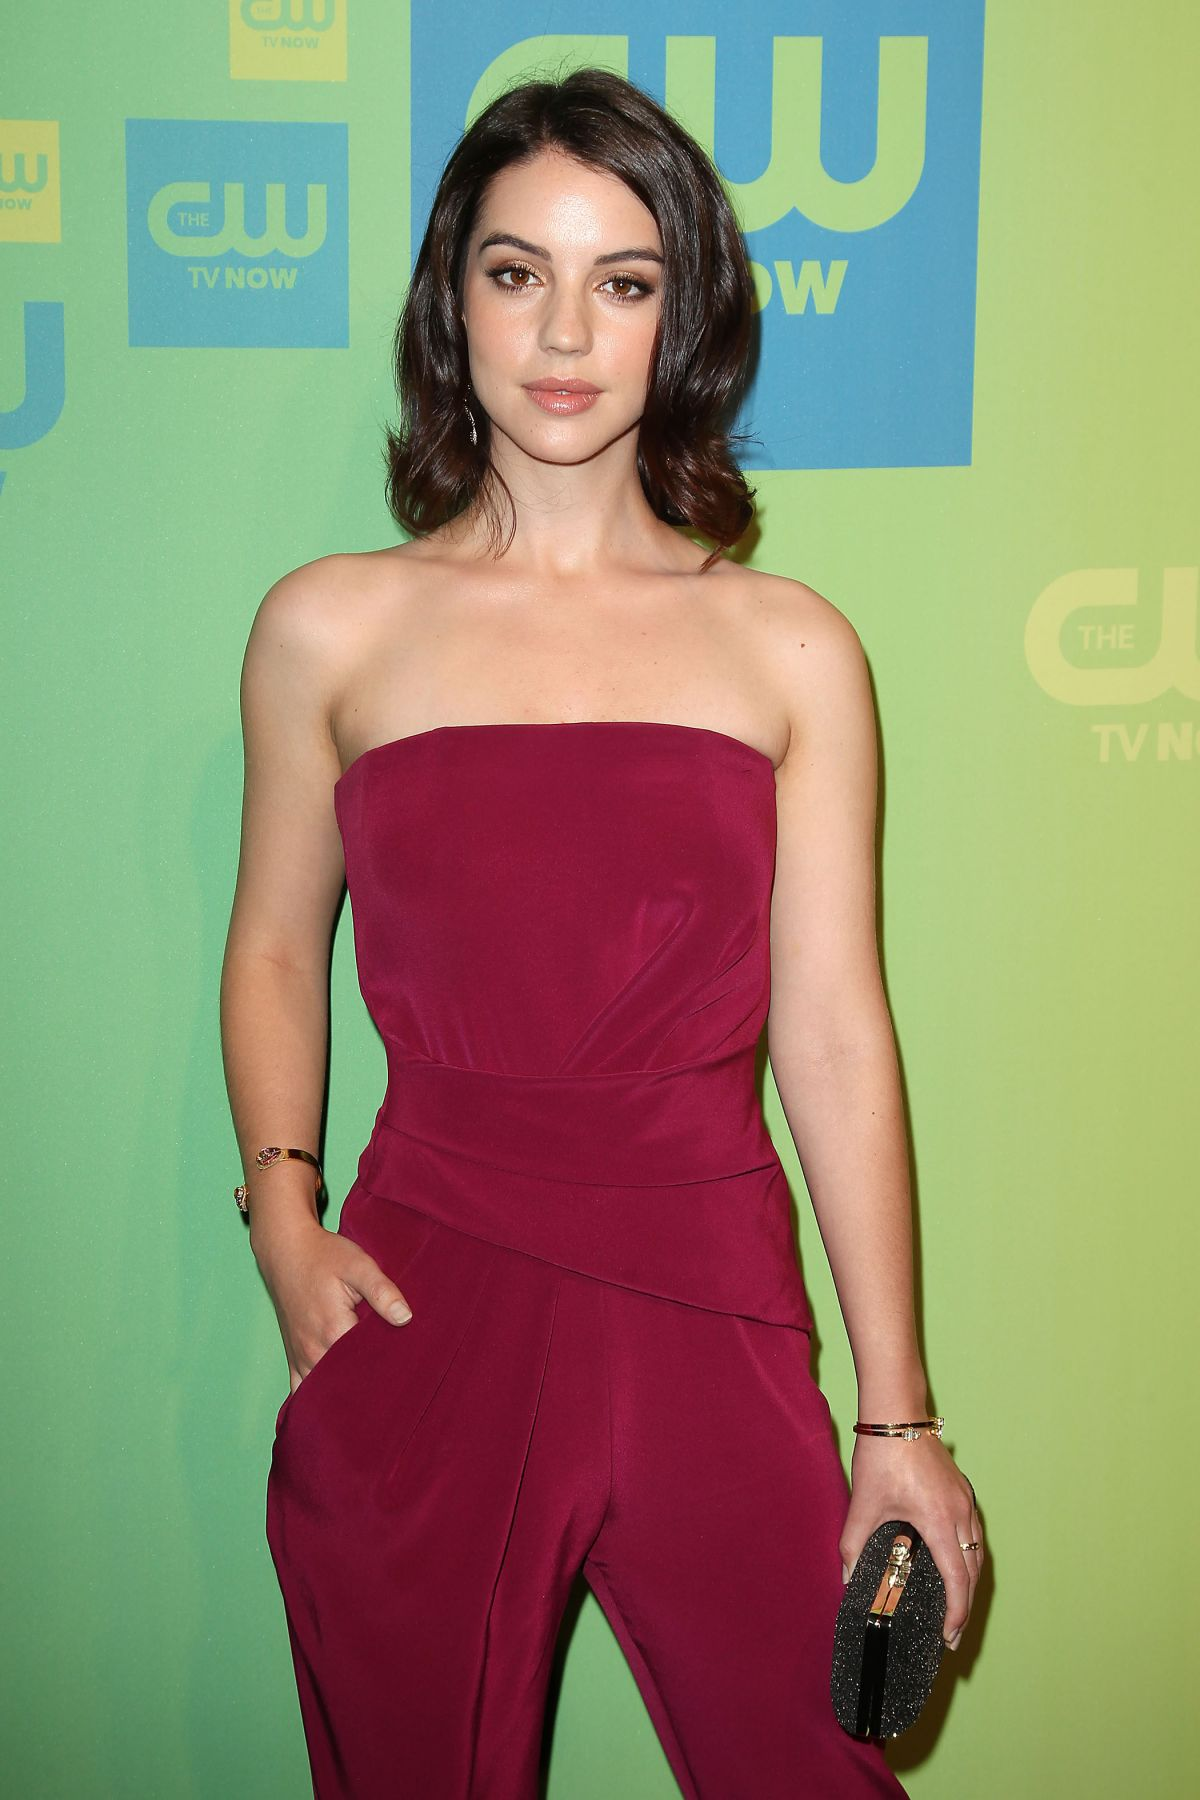 ADELAIDE KANE at CW Upfronts Presentation in New York